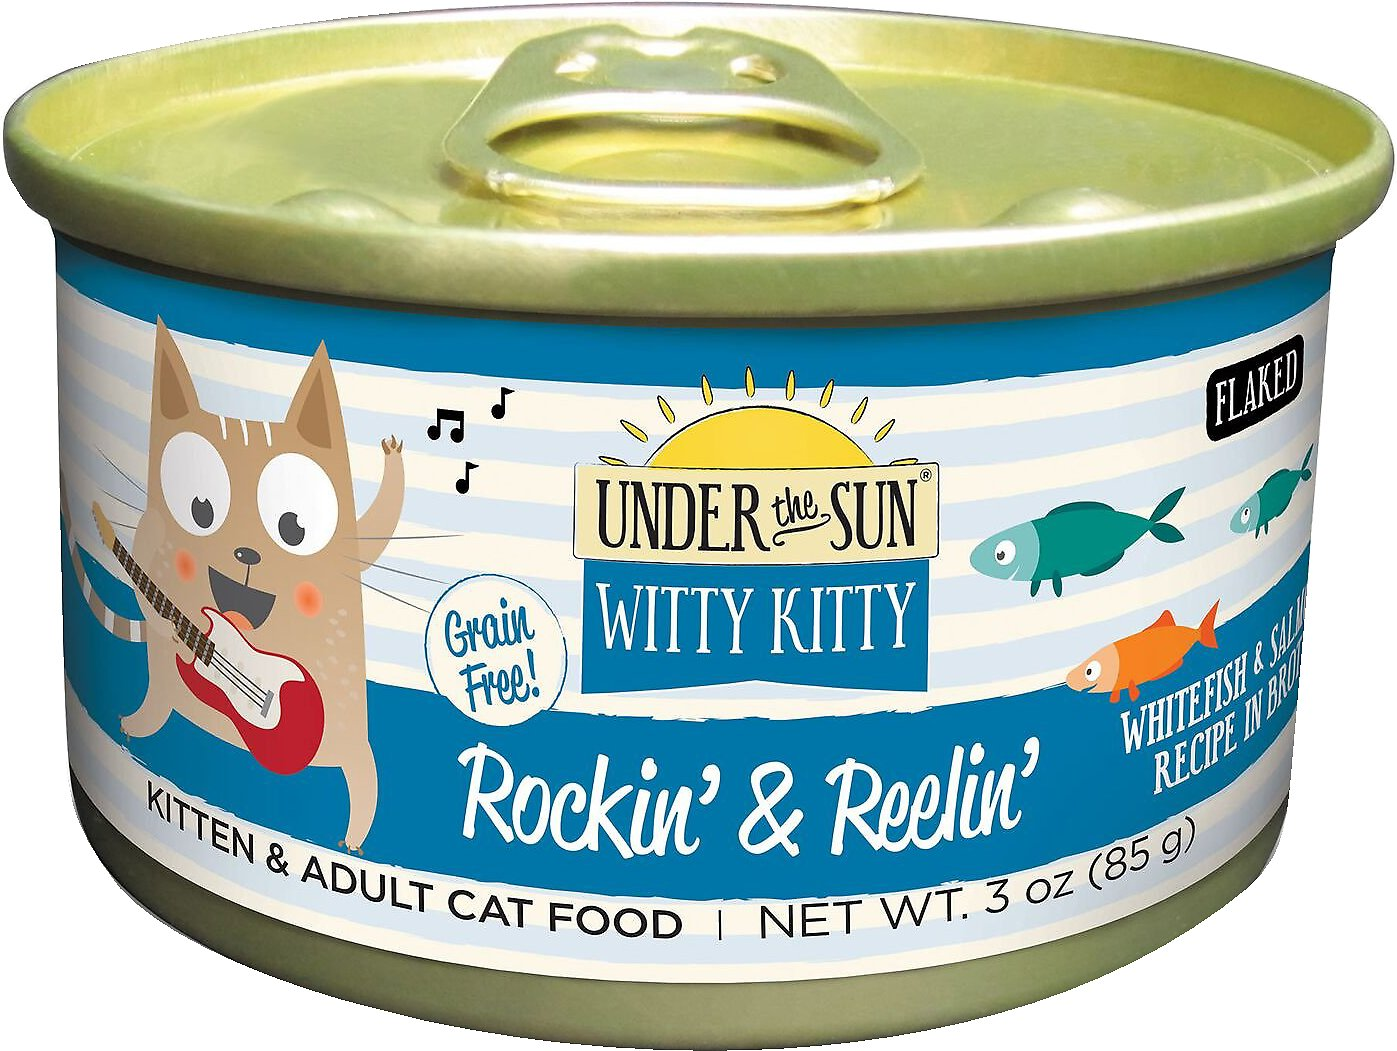 Under the Sun Witty Kitty Rockin' & Reelin' Grain-Free with Whitefish & Salmon Canned Cat Food, 3-oz